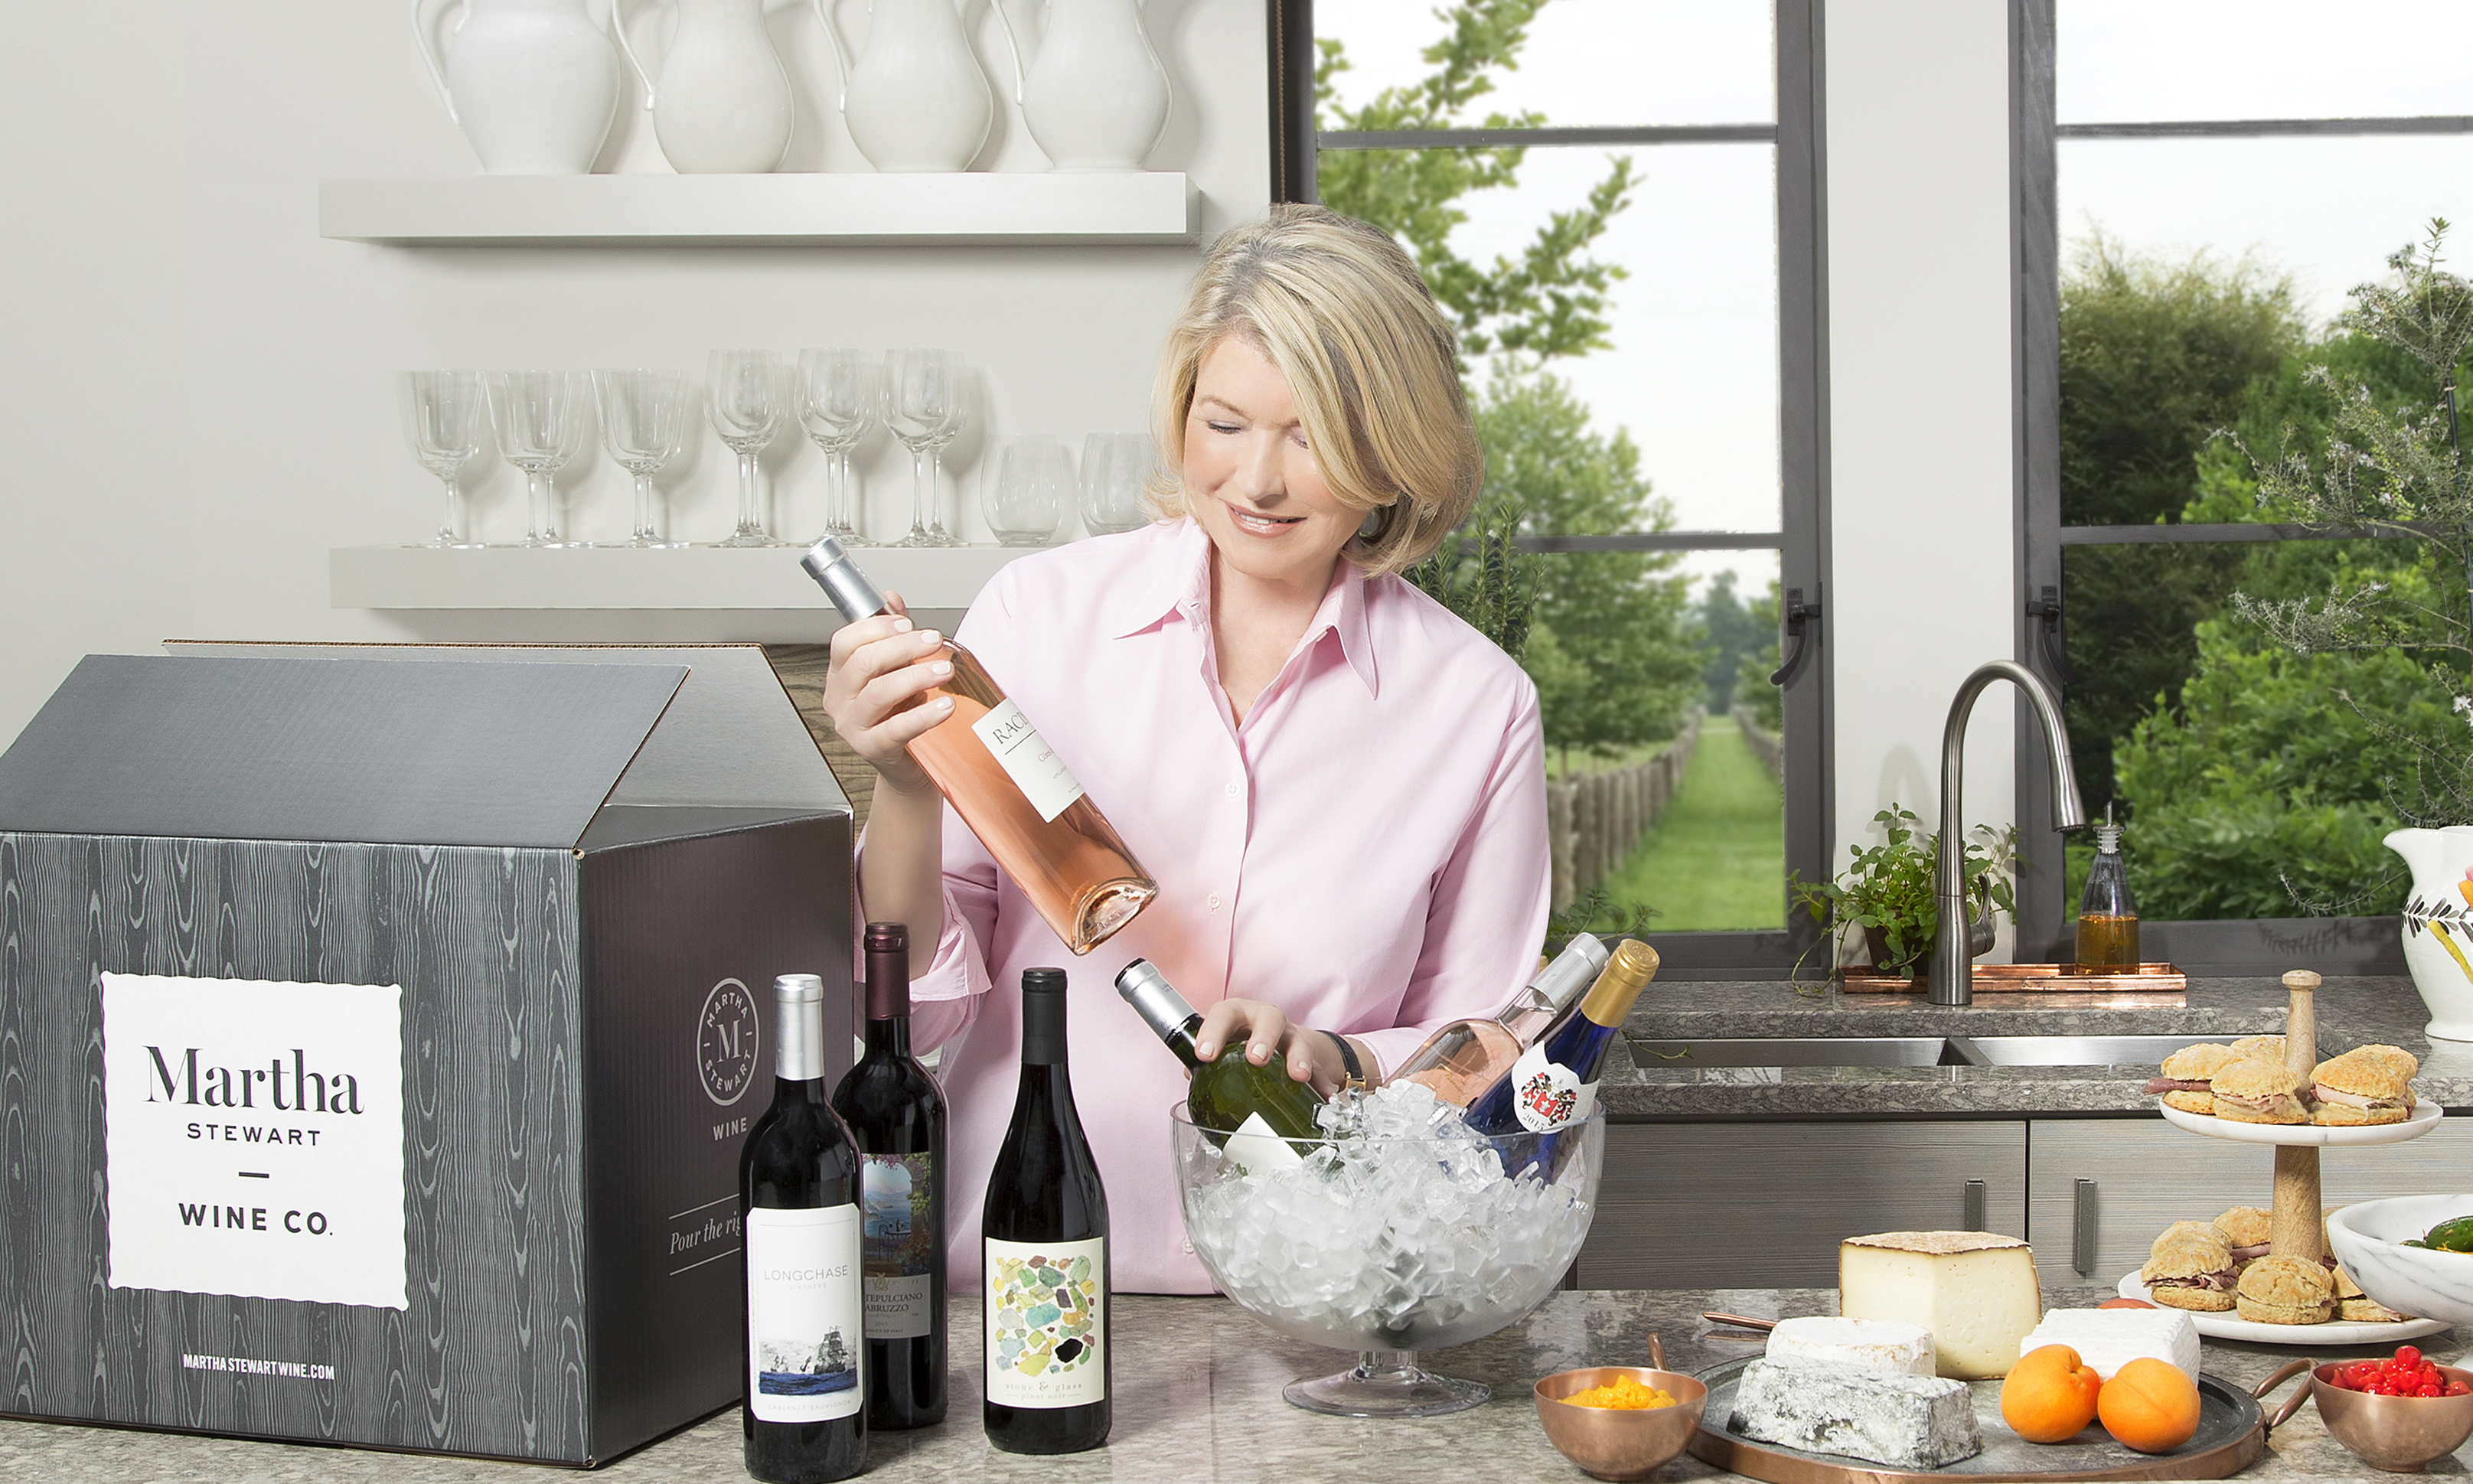 Lifestyle guru Martha Stewart is launching an online wine and a monthly wine club on MarthaStewartWine.com.